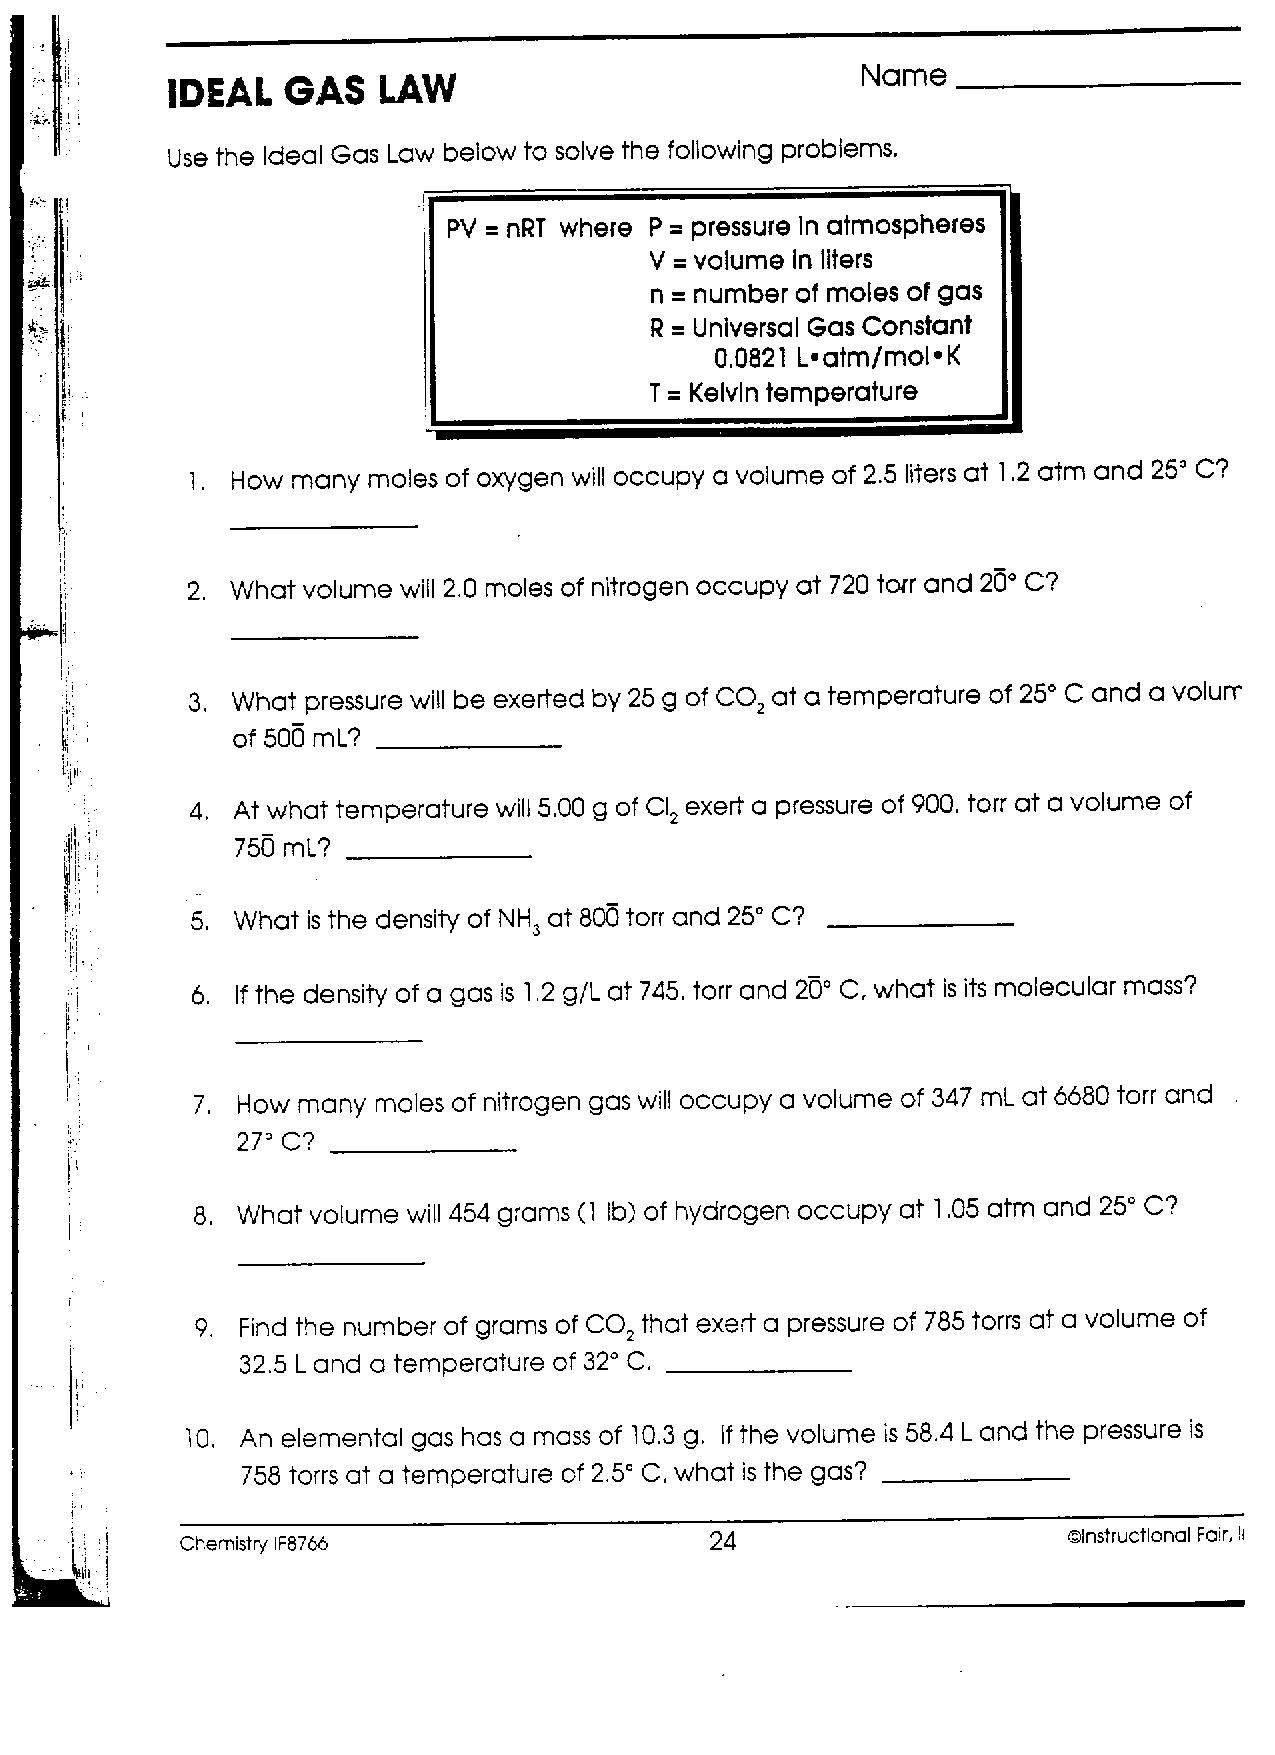 Chemistry Gas Laws Worksheet - chemistry gas laws worksheet with ...